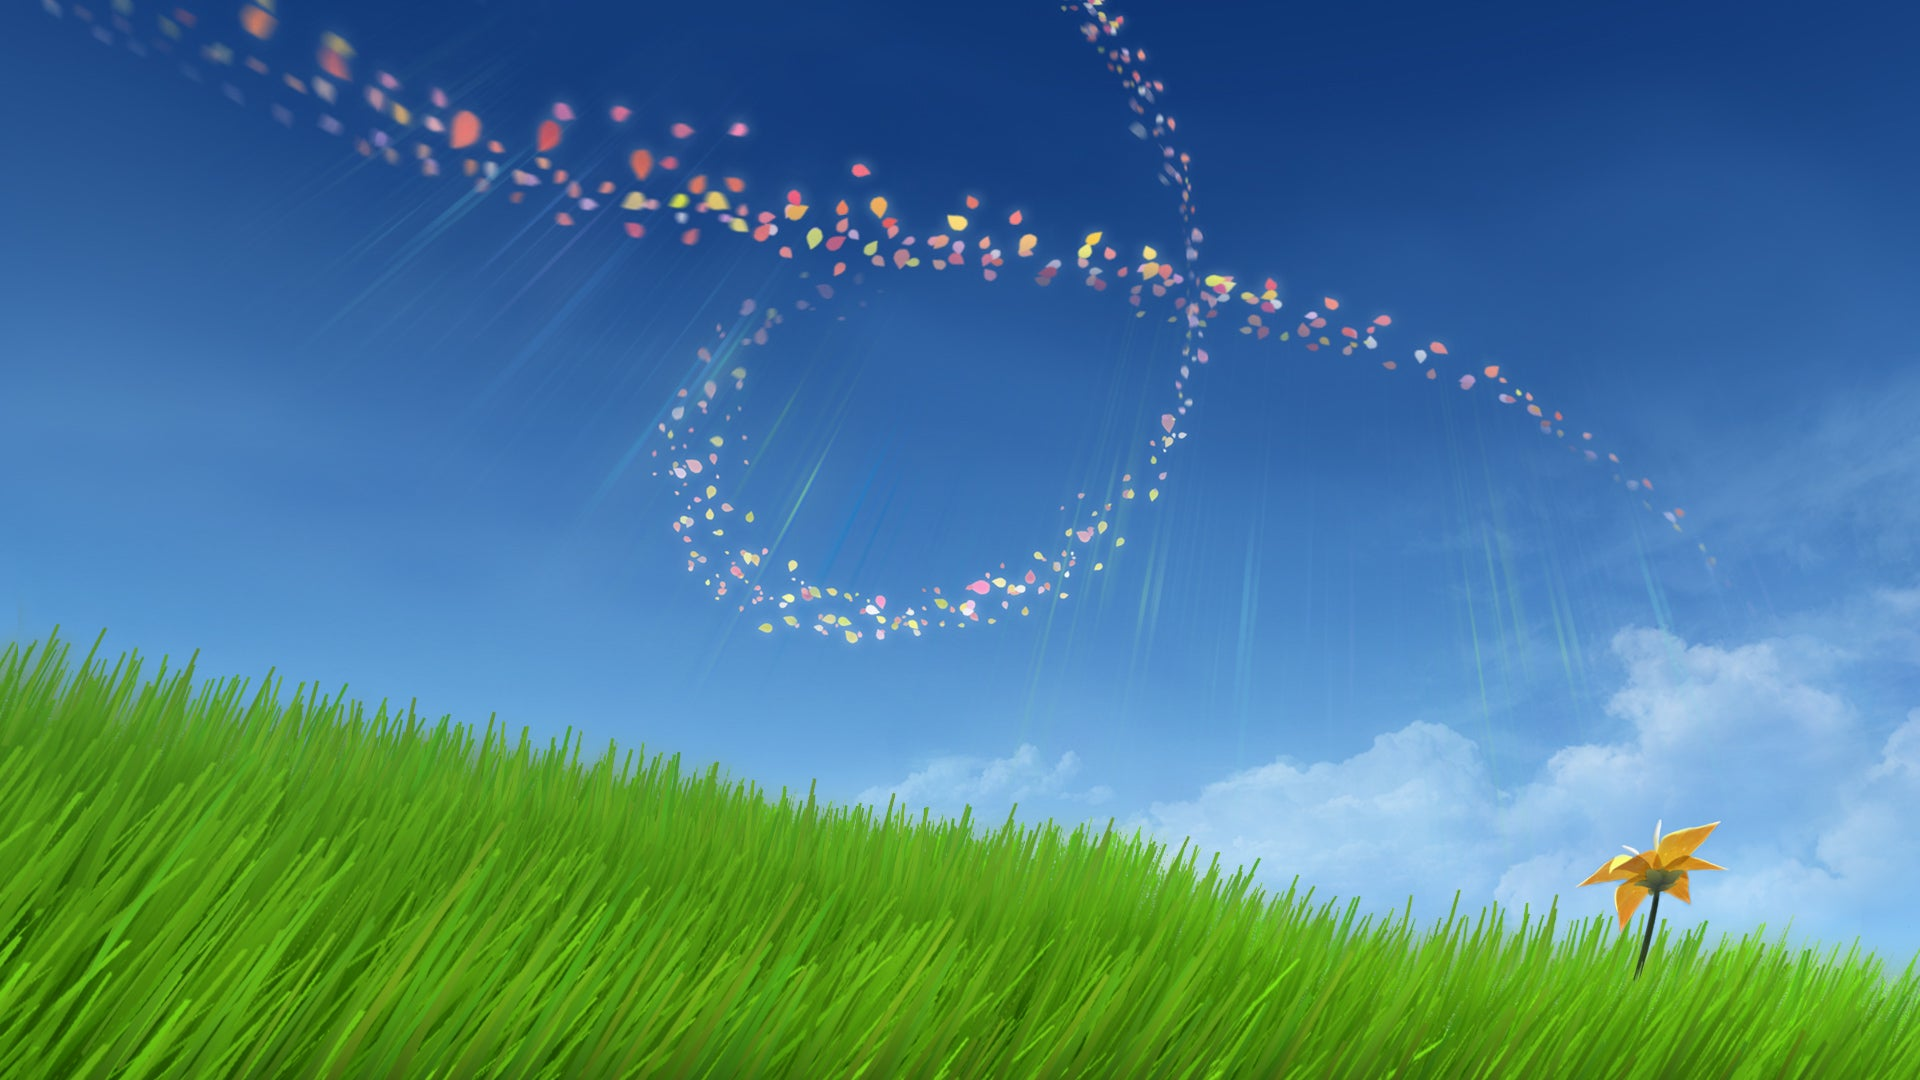 A key art image from Flower, showing a blue sky